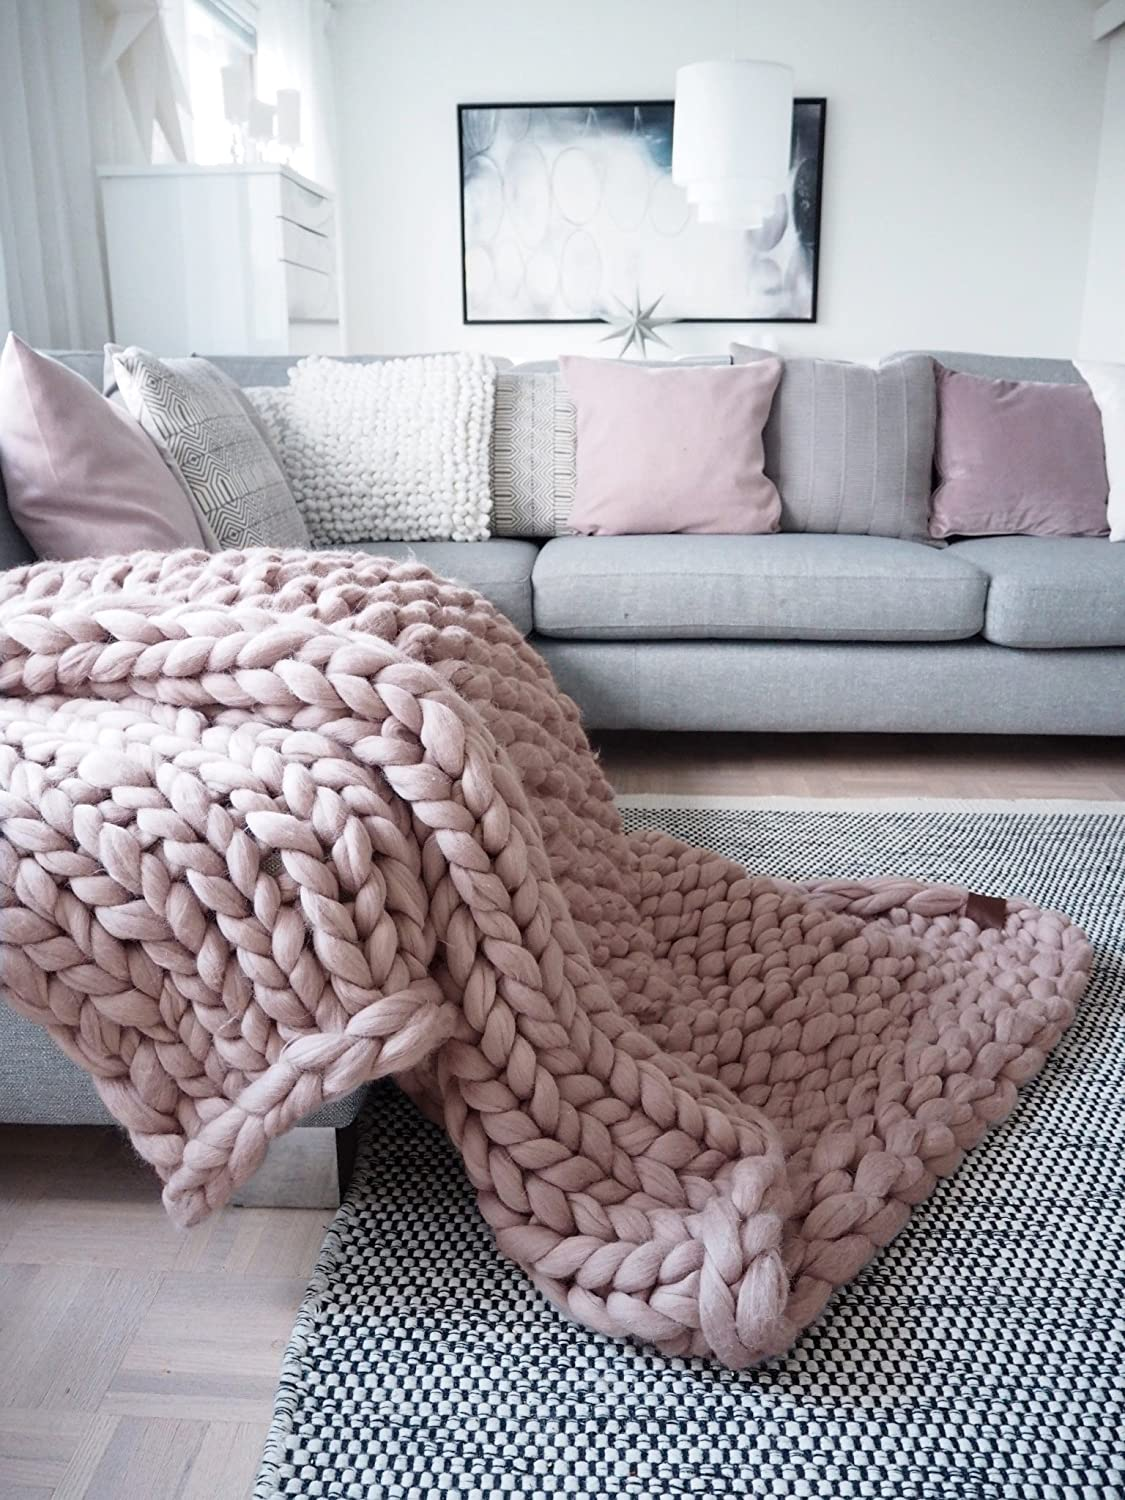 Chunky blanket Merino wool blanket Throw made from chunky yarn Super chunky knits Arm knitted blanket Christmas gift